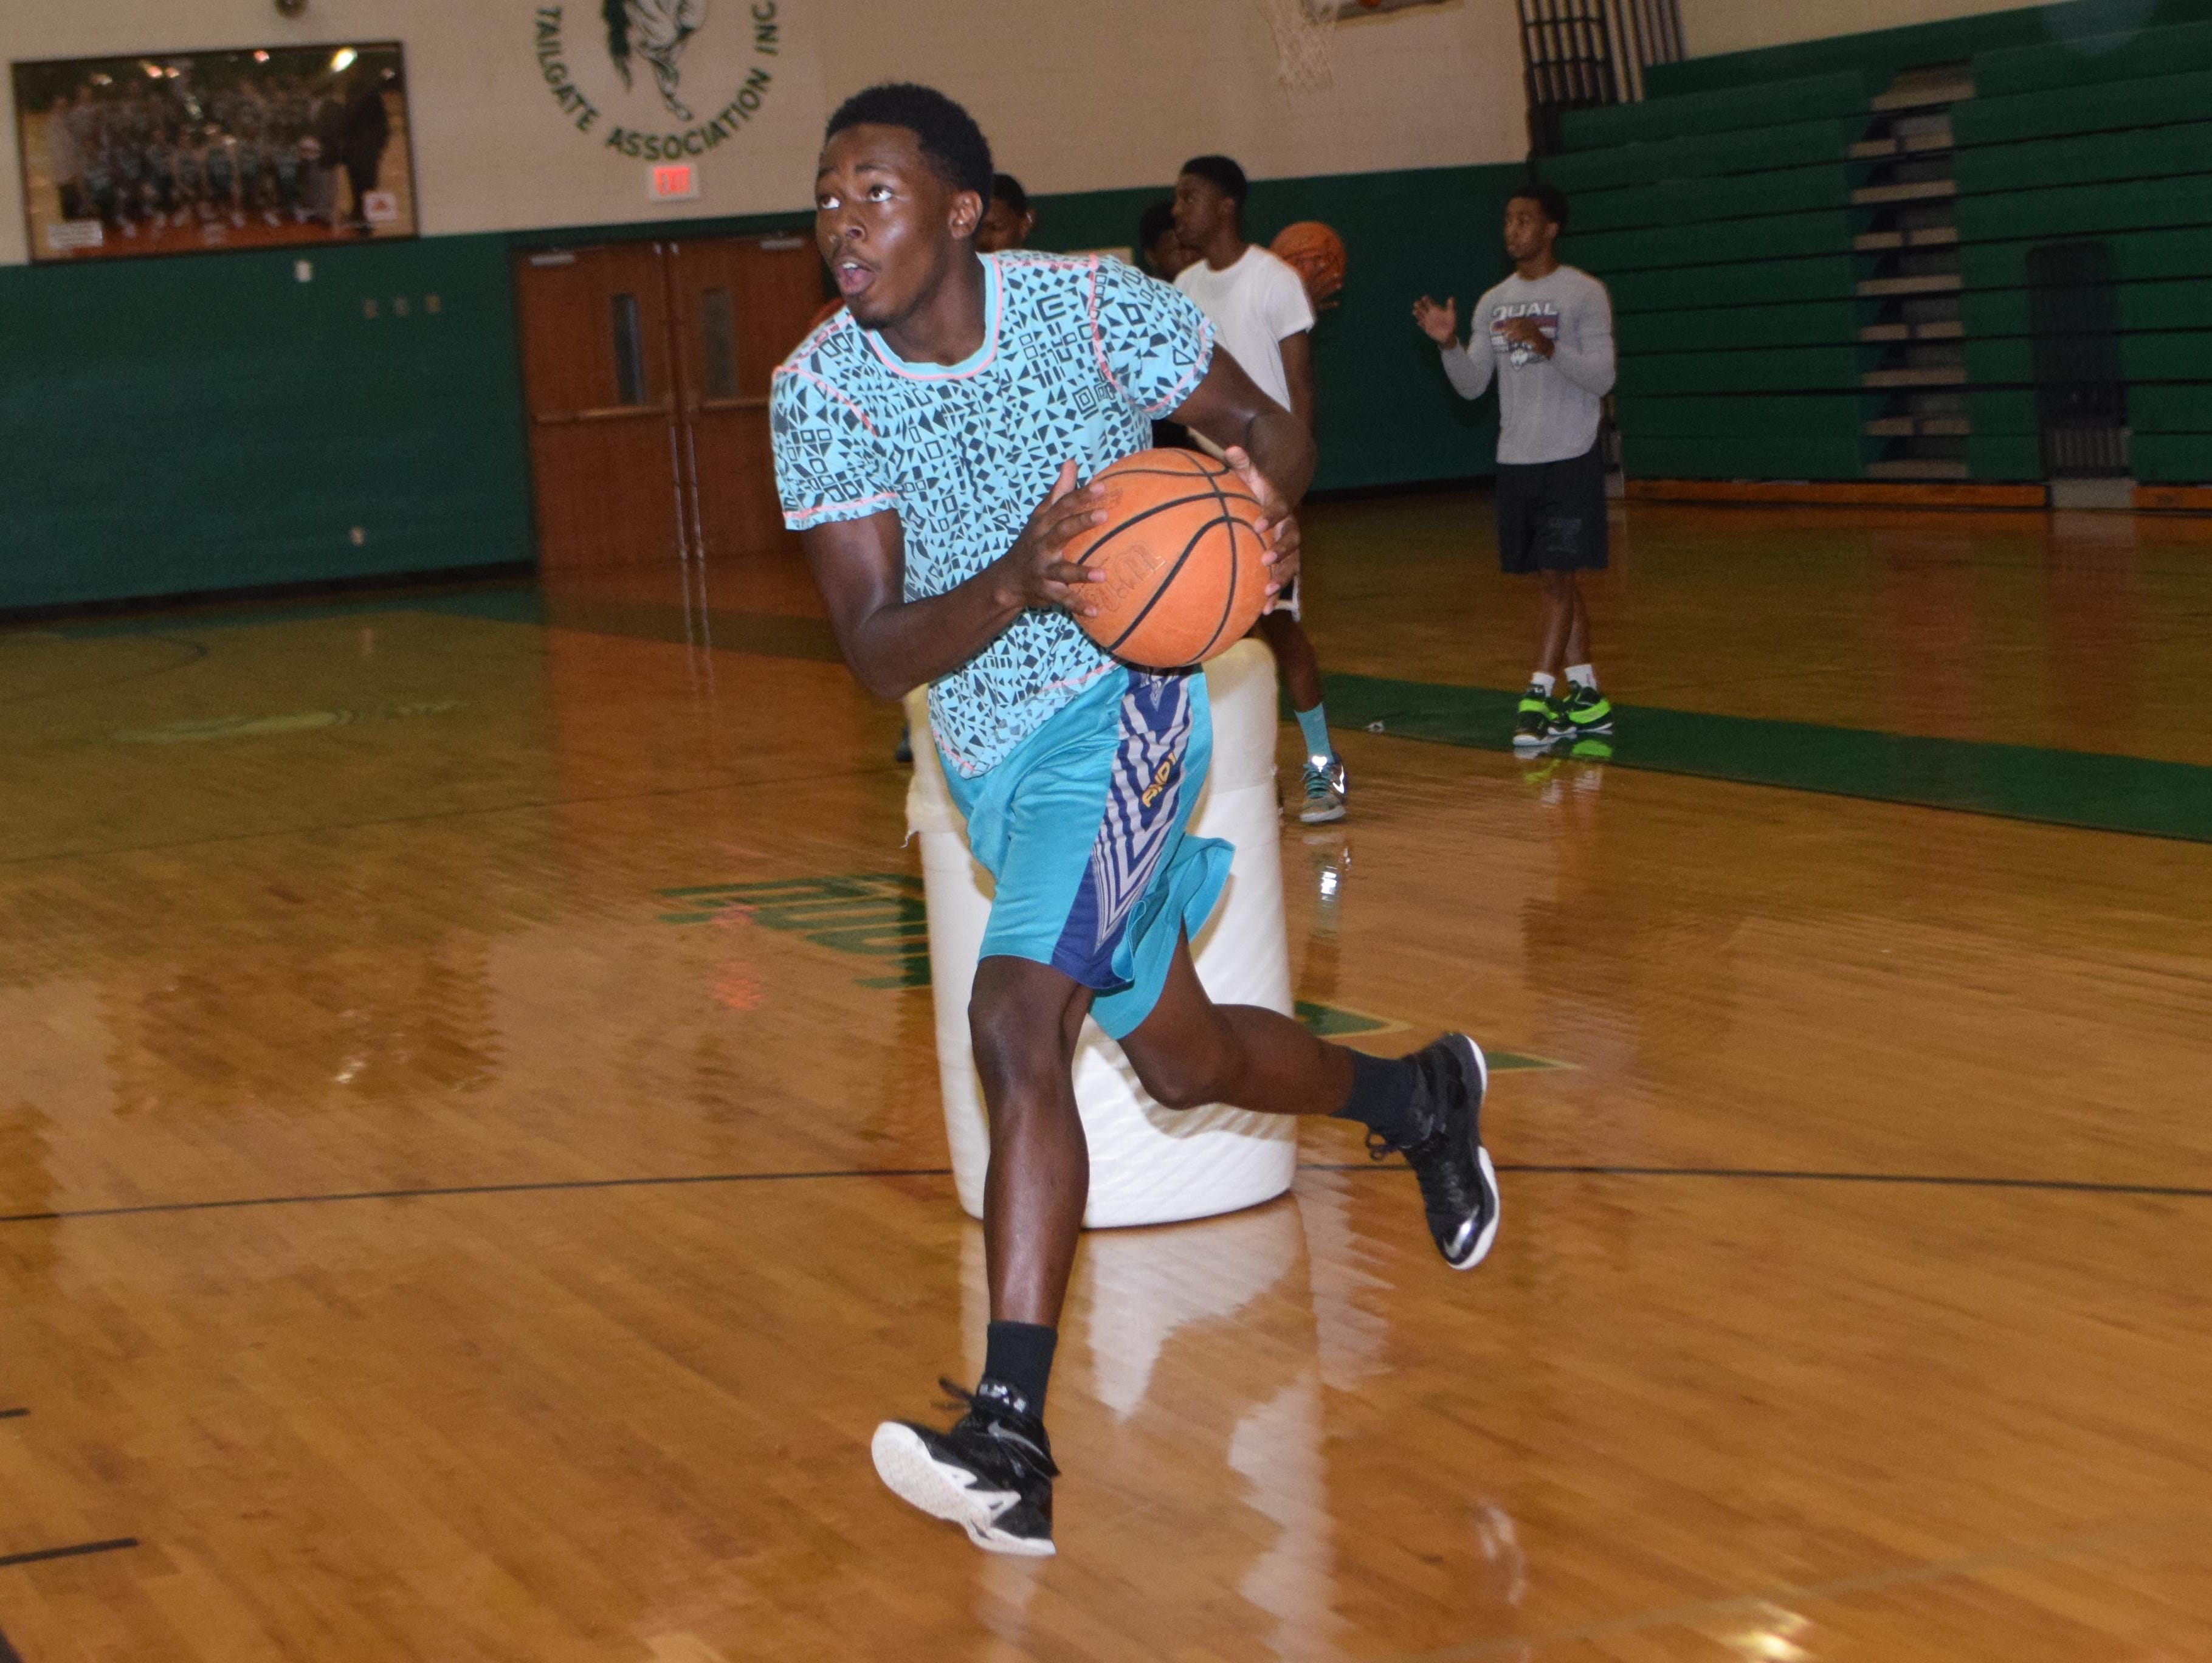 Peabody's Corey King practices with the rest of the Peabody team Wednesday. The Peabody Magnet High School basketball team recently won the Houston National Summer Showcase.